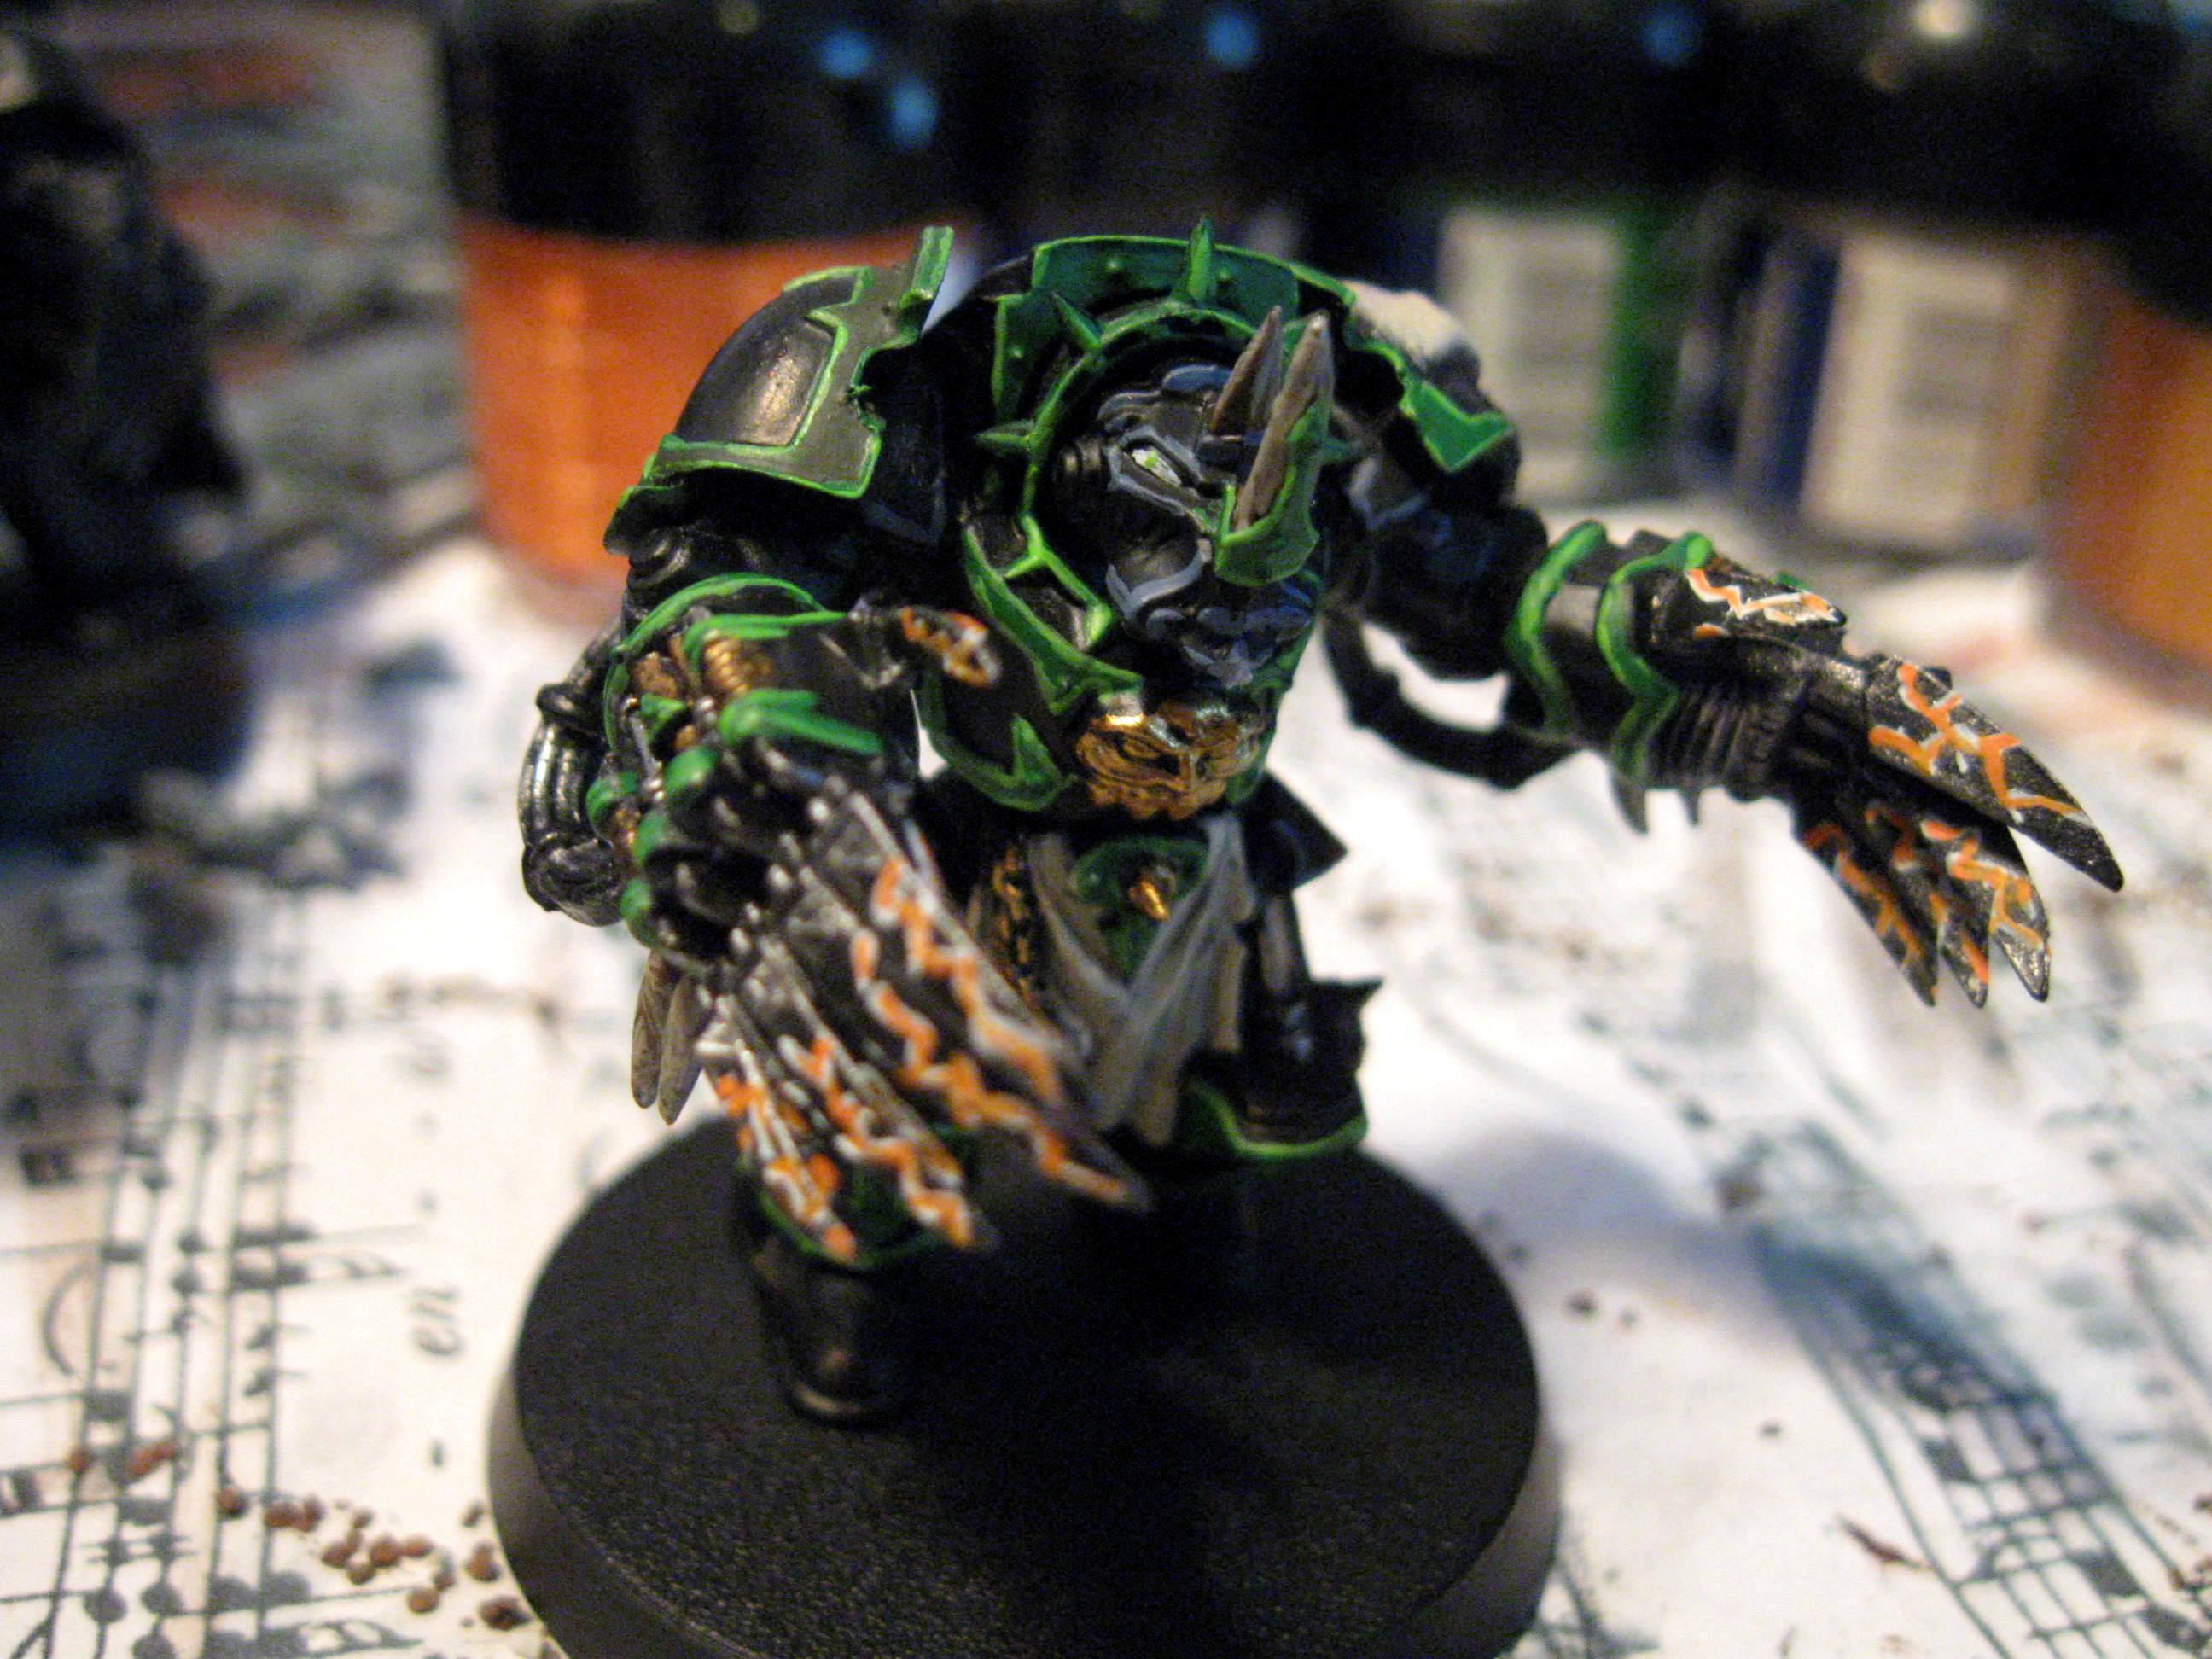 Chaos Space Marines, Lightning Claws, Terminator Armor, Warhammer 40,000